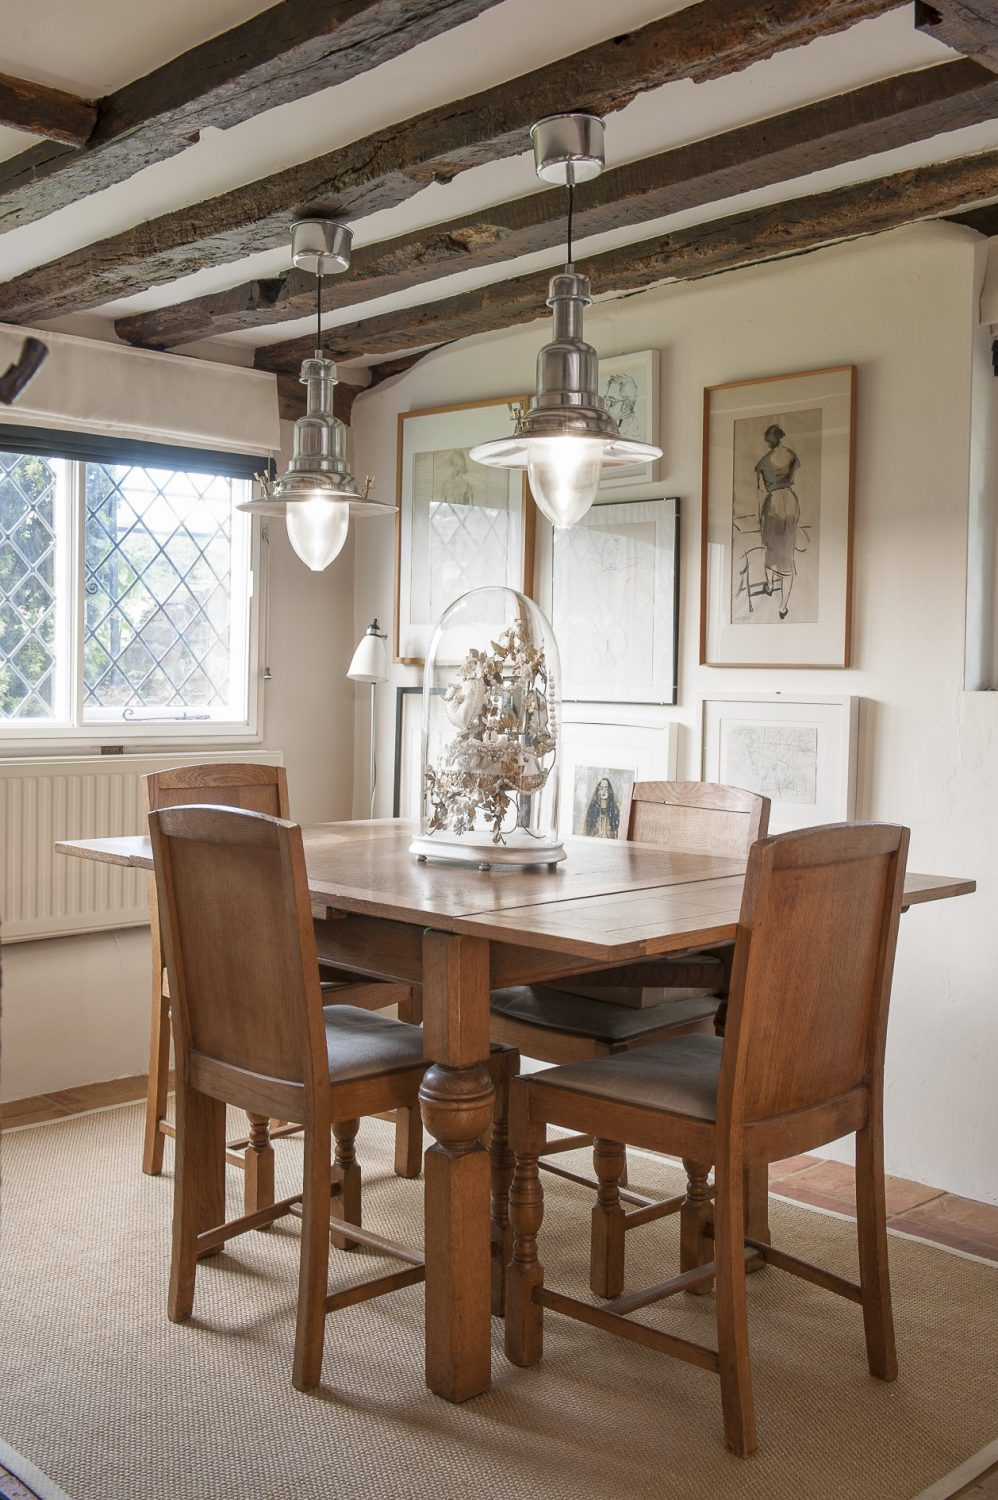 Hanging above the dining table and chairs, sourced from SV Antiques, is a pair of old stainless steel industrial lights. A few of Roni's sketches are mounted in frames on the wall between life drawings and charcoal studies